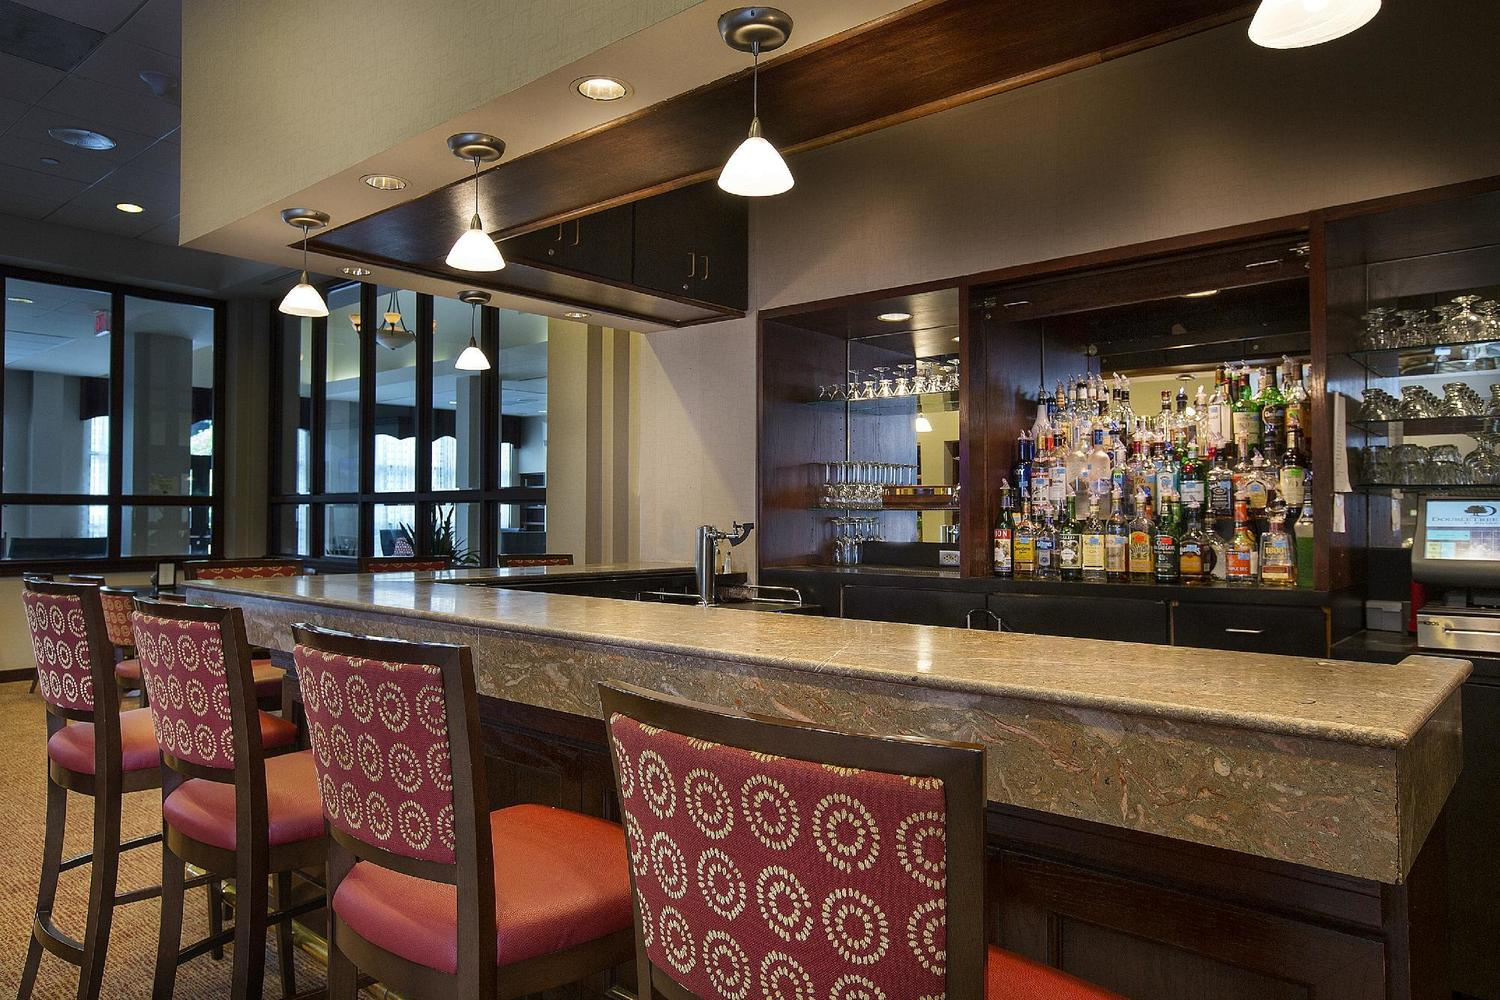 Restaurant Server Bartender At Doubletree By Hilton Hotel